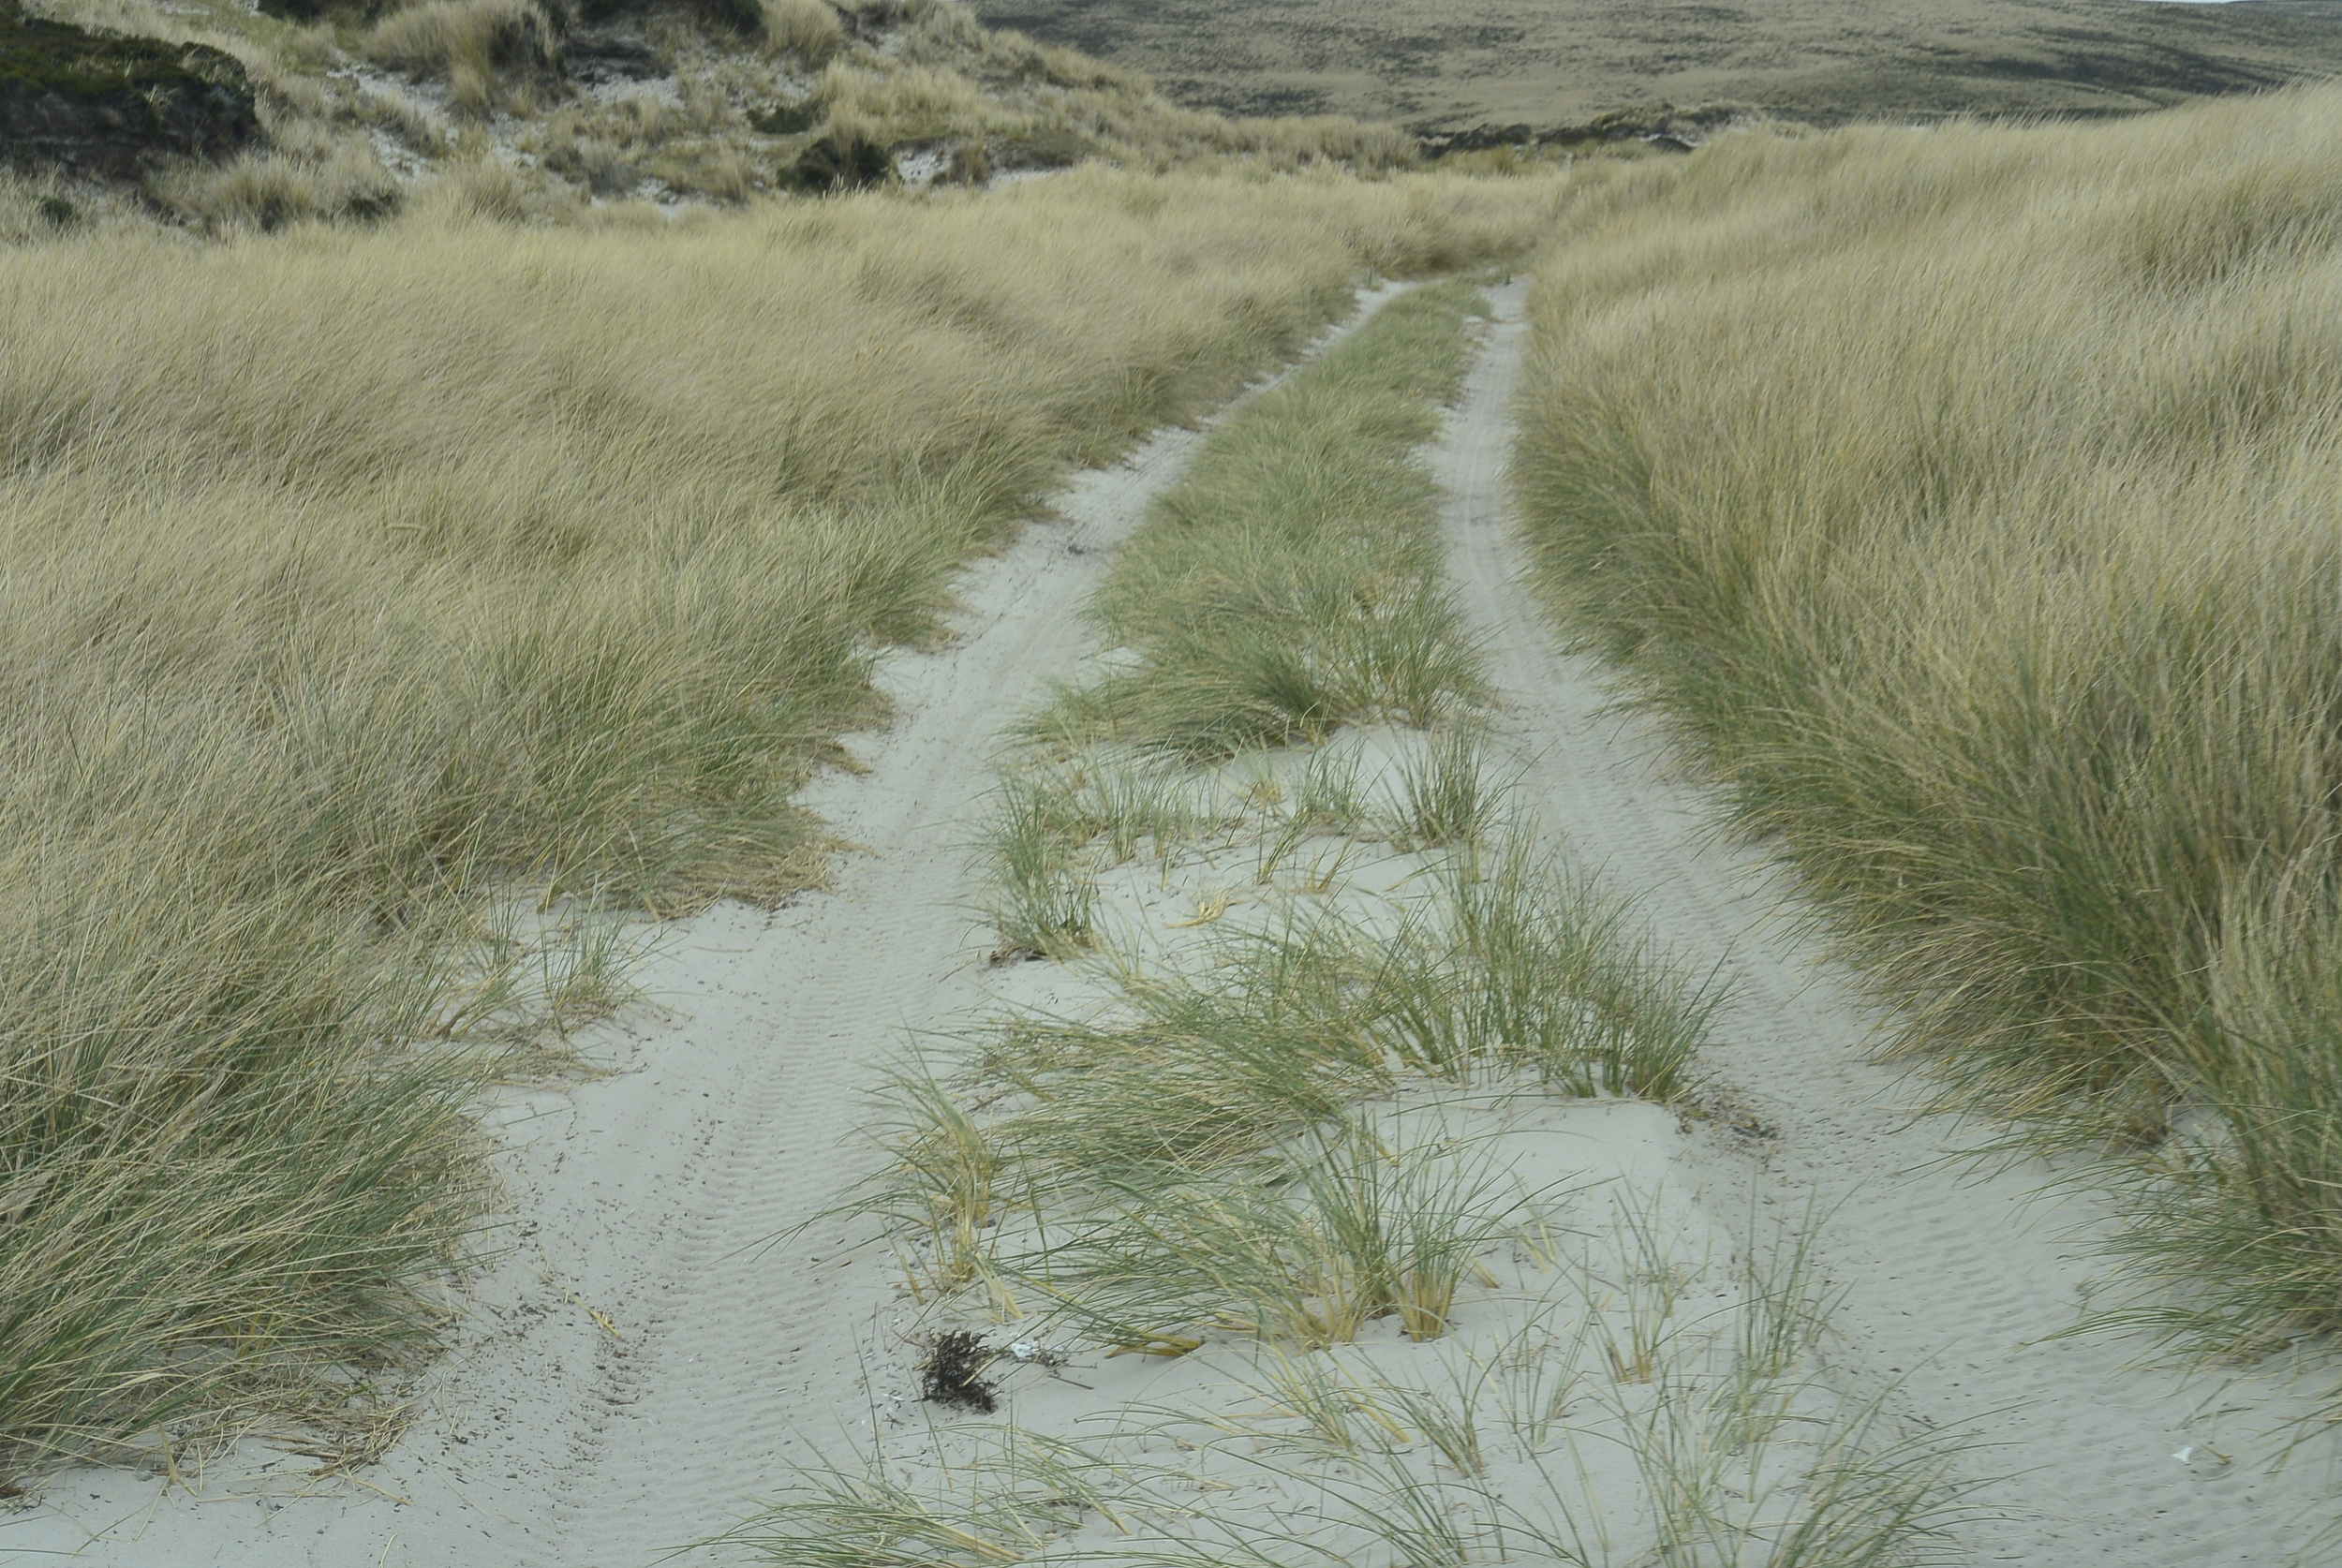 Falkland Islands Tracks